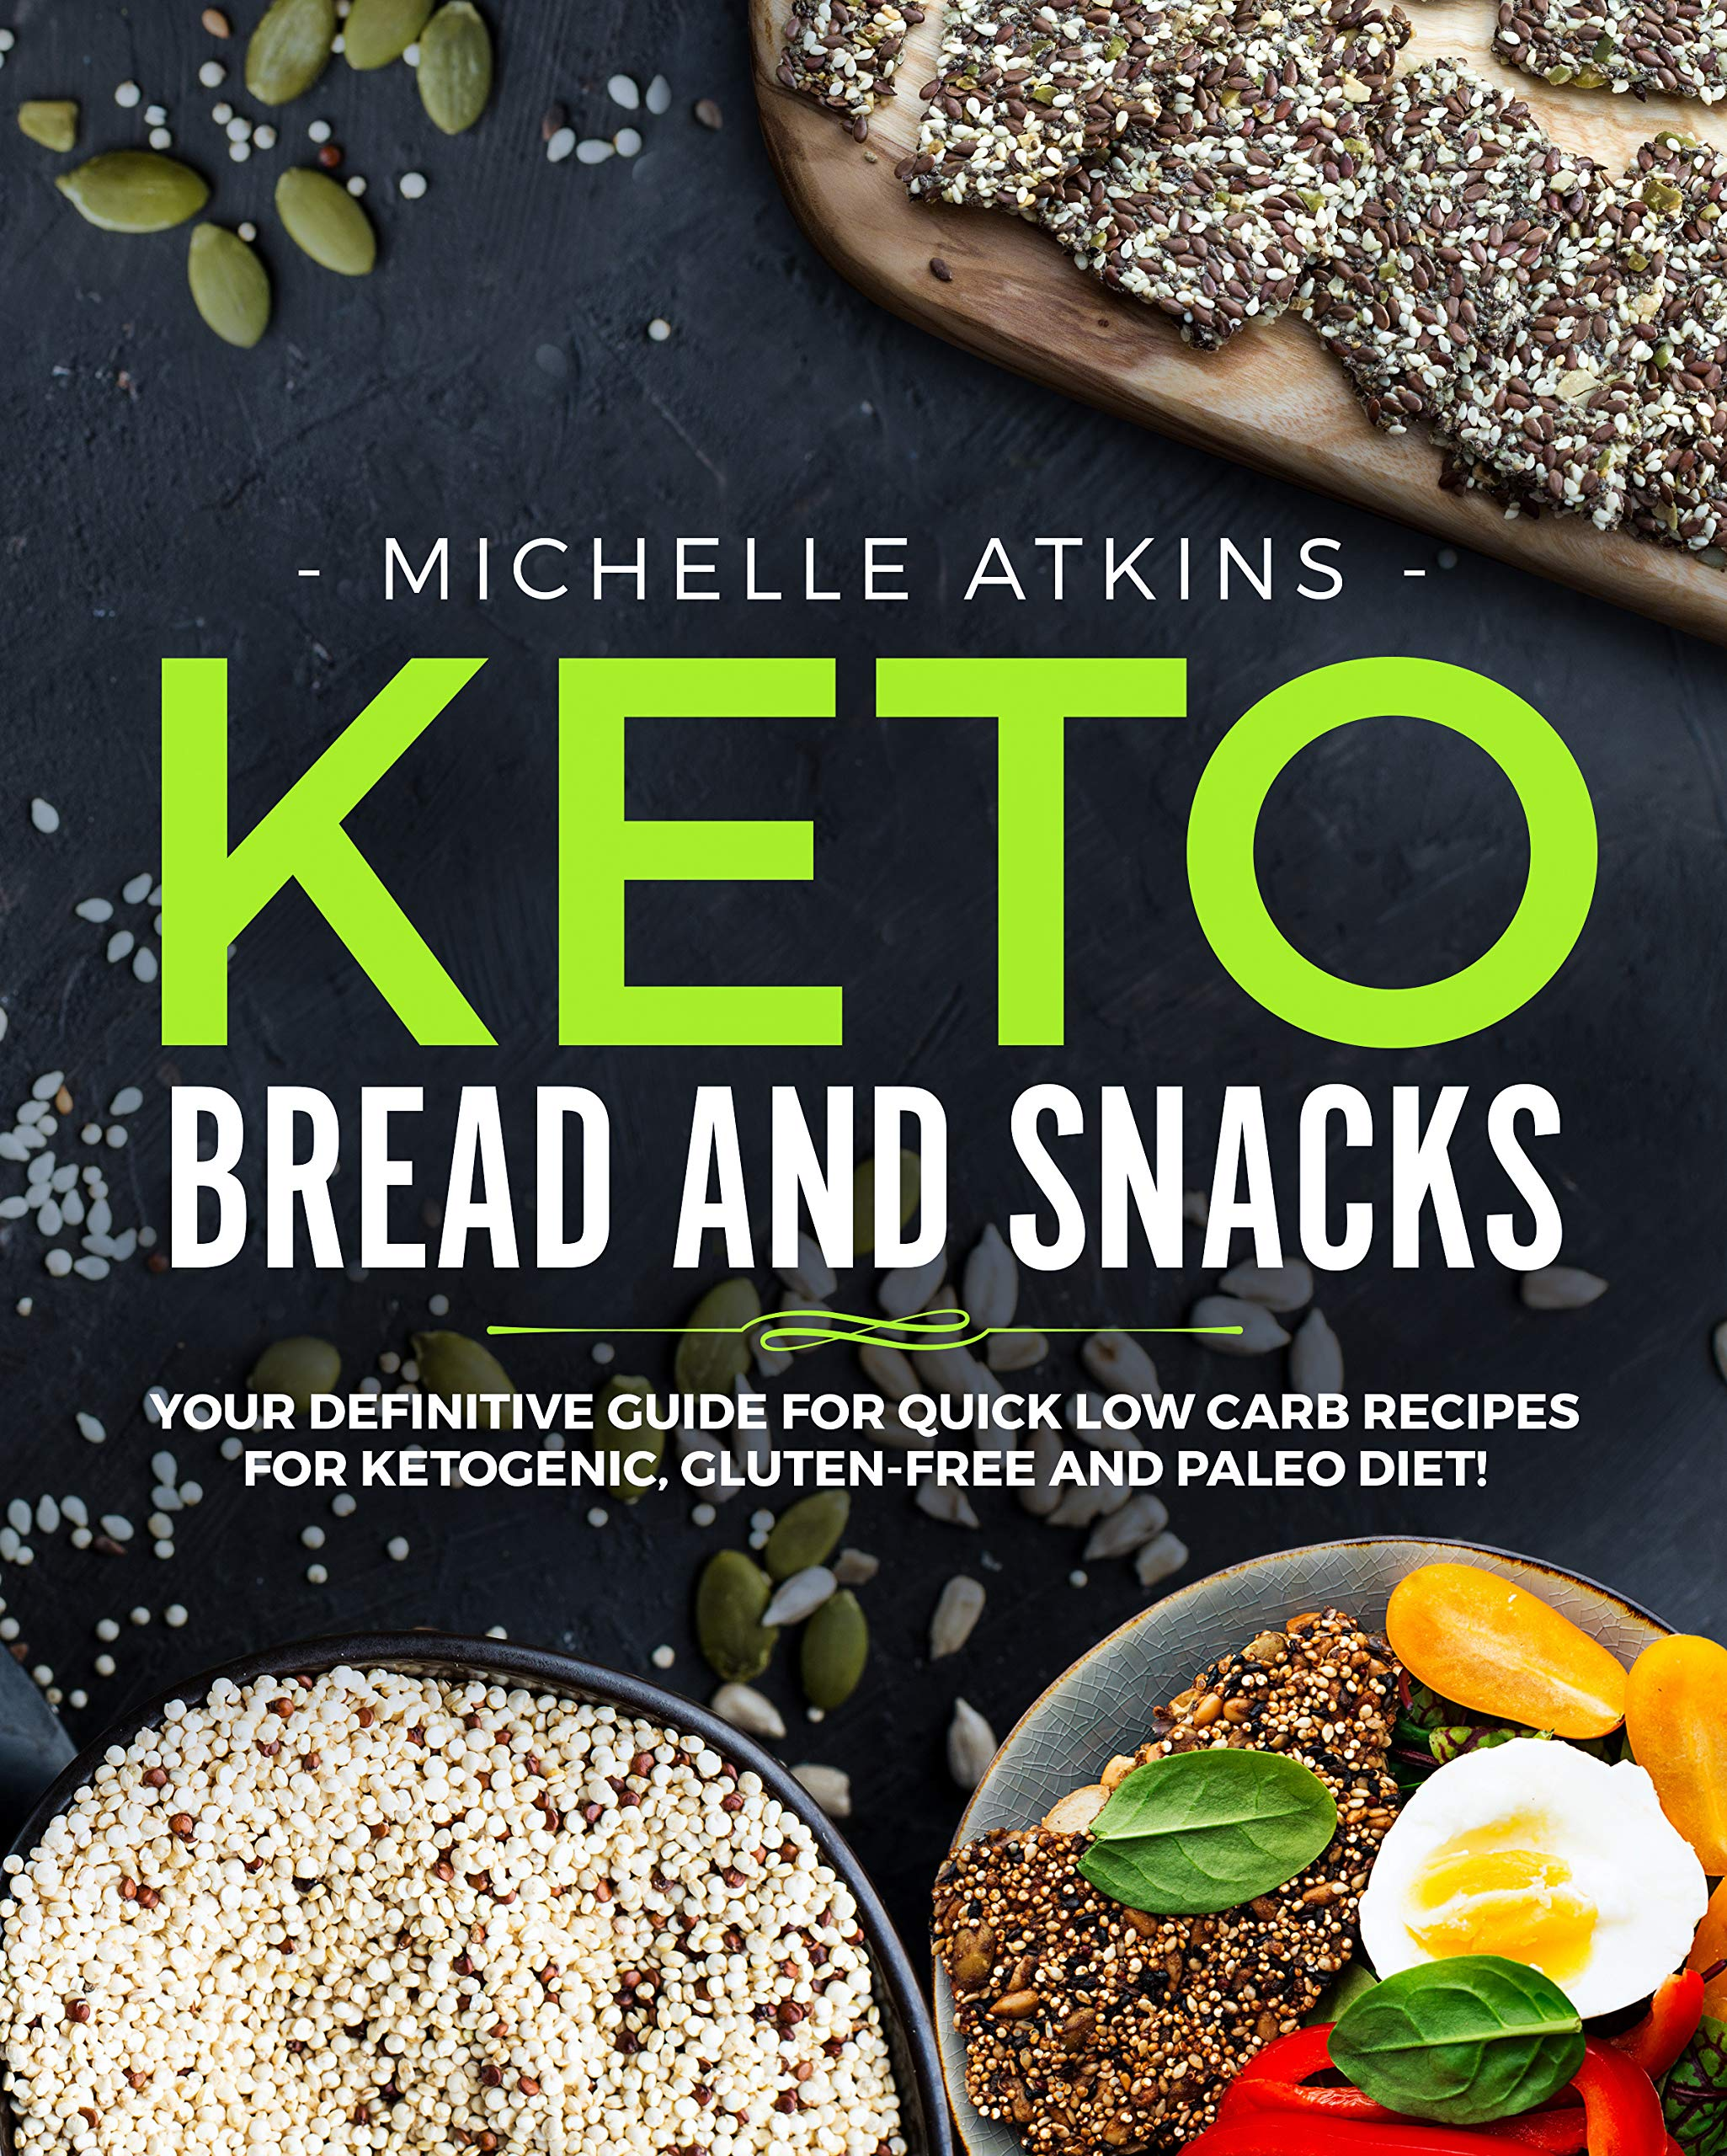 Keto Bread and Keto Snacks: Your Definitive Cookbook for Quik, Low Carb Recipes for Ketogenic, Gluten Free and Paleo Diet!...